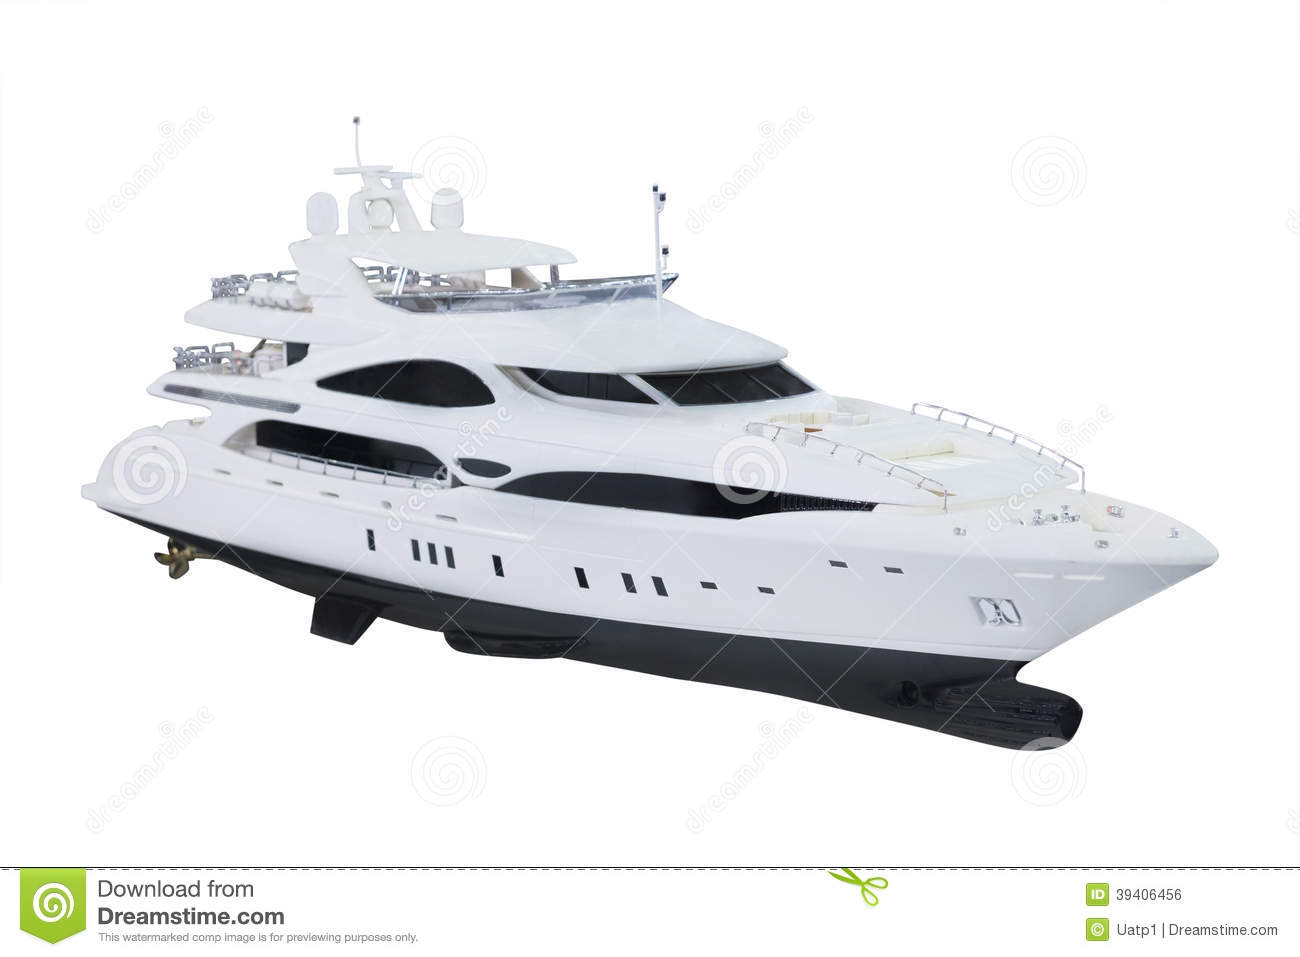 Model Of A Motor Boat Stock Photo - Image: 39406456